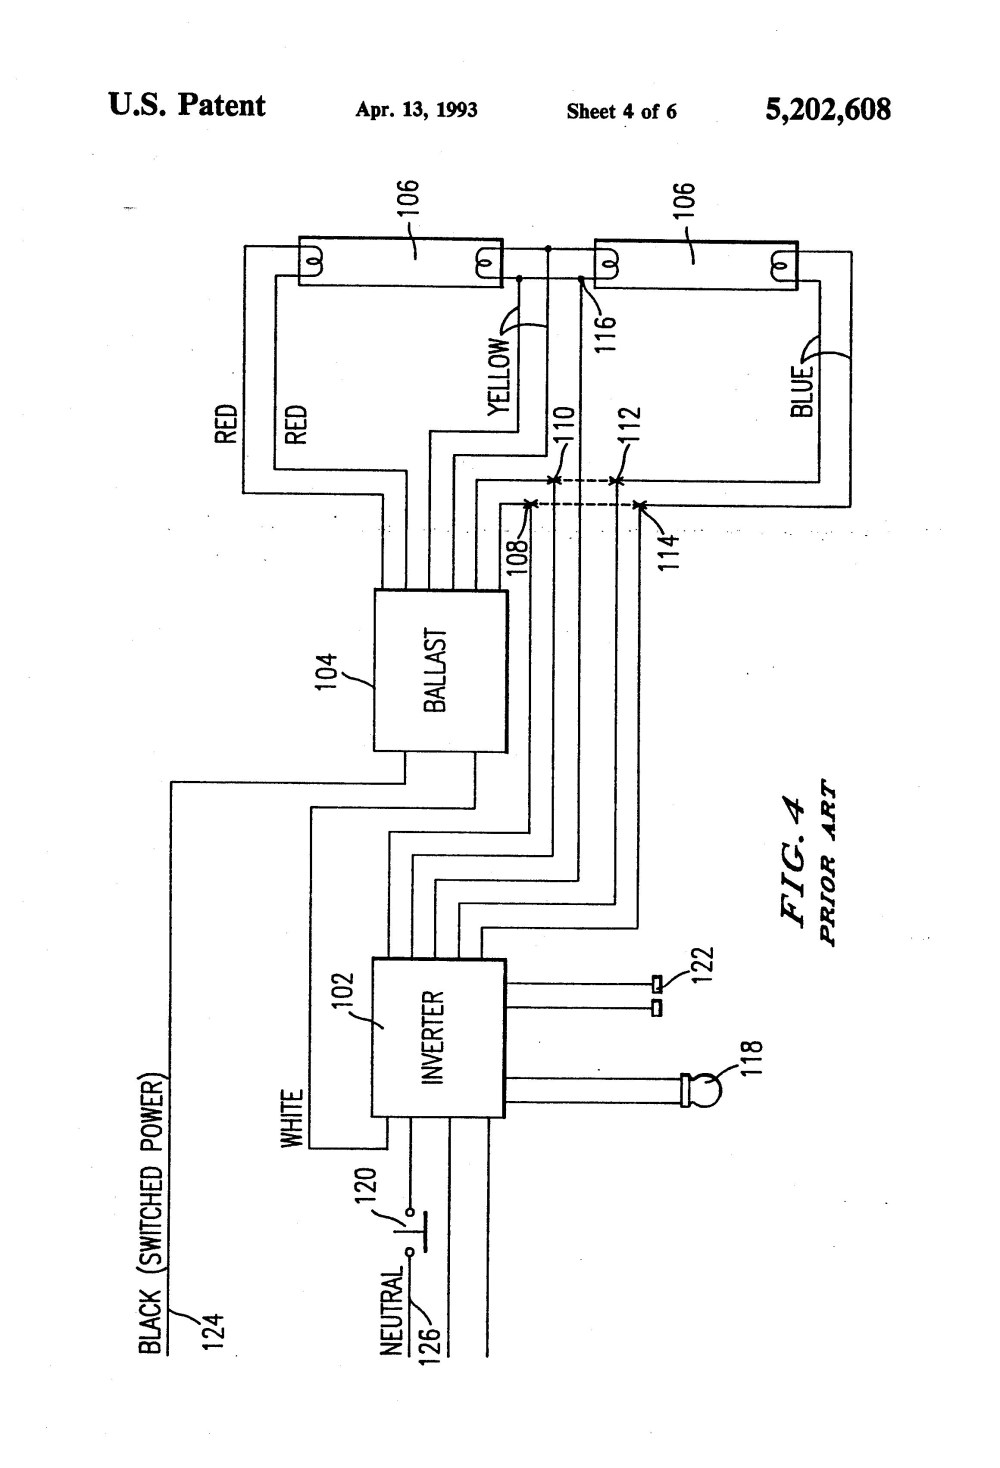 medium resolution of advance ballast wiring diagram with battery backup example advance fluorescent ballast wiring diagram